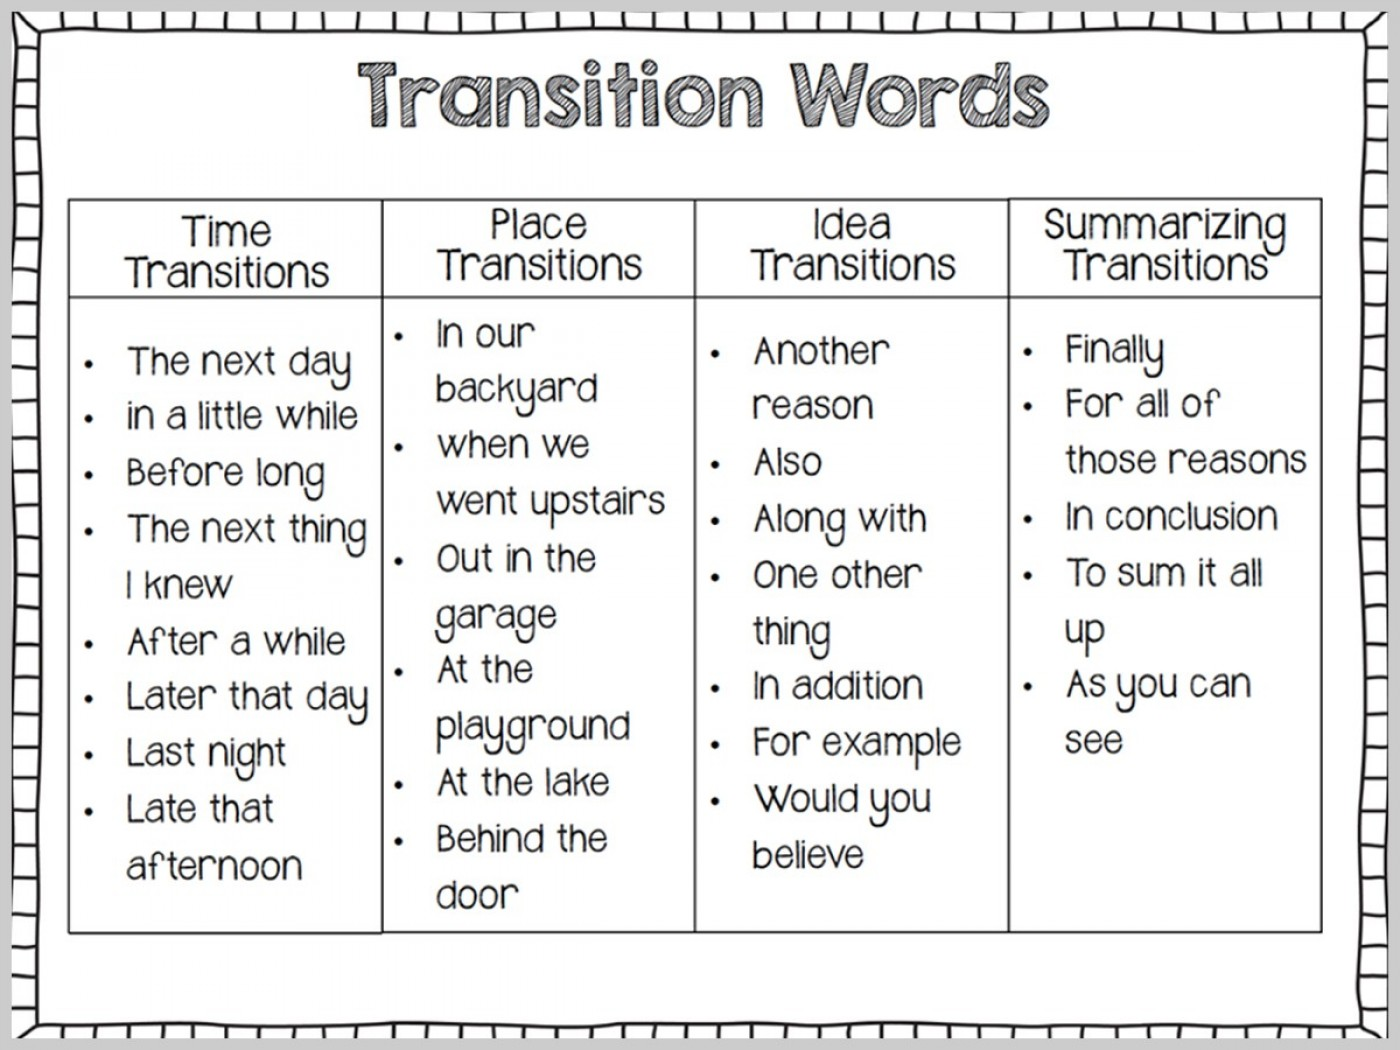 Complete List of Transition Words